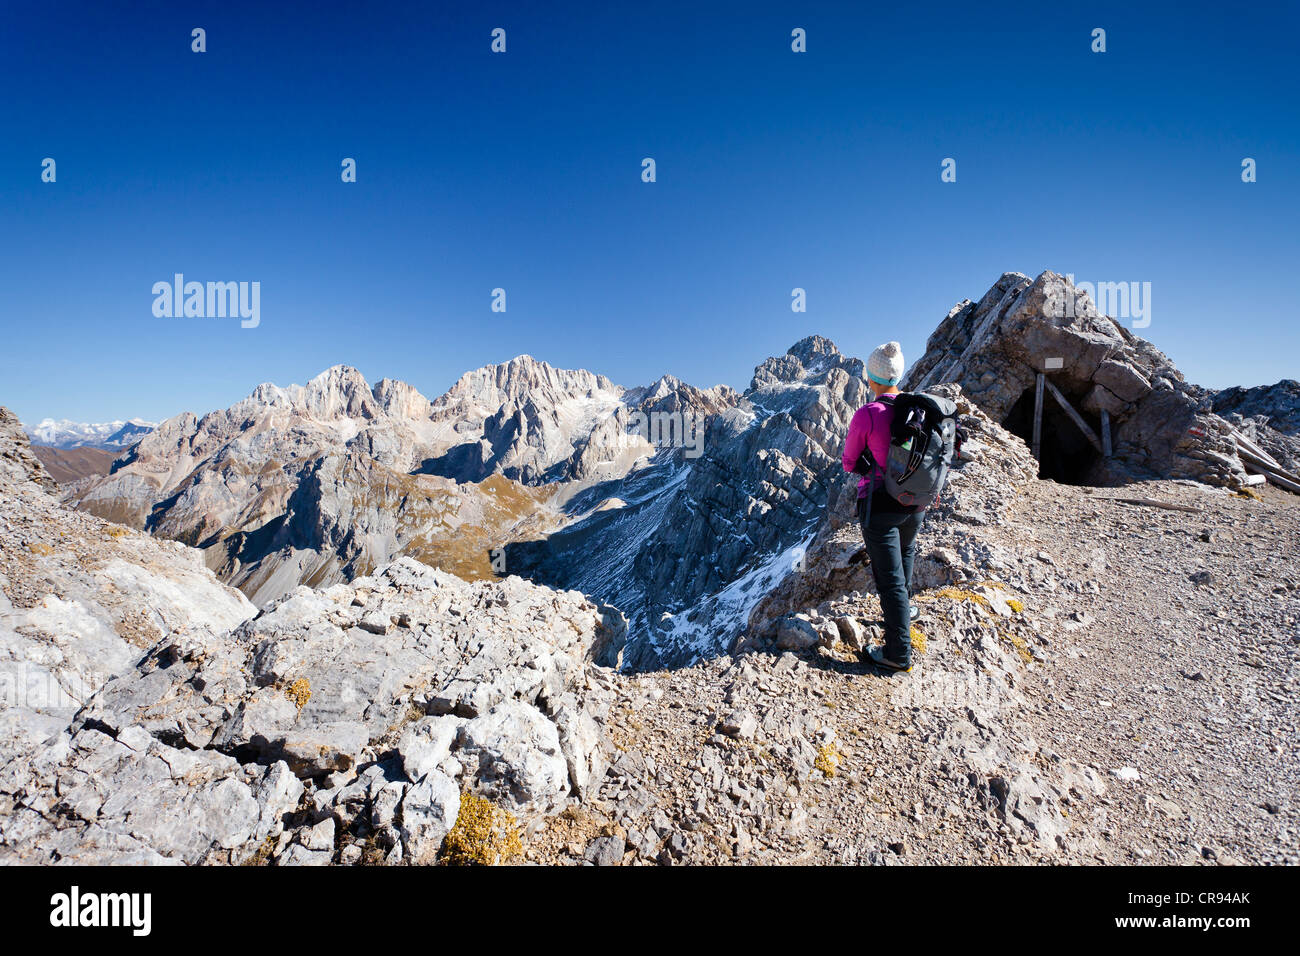 Hiker on Bepi Zac climbing route in the San Pellegrino Valley above the San Pellegrino Pass, currently on Costabela Stock Photo